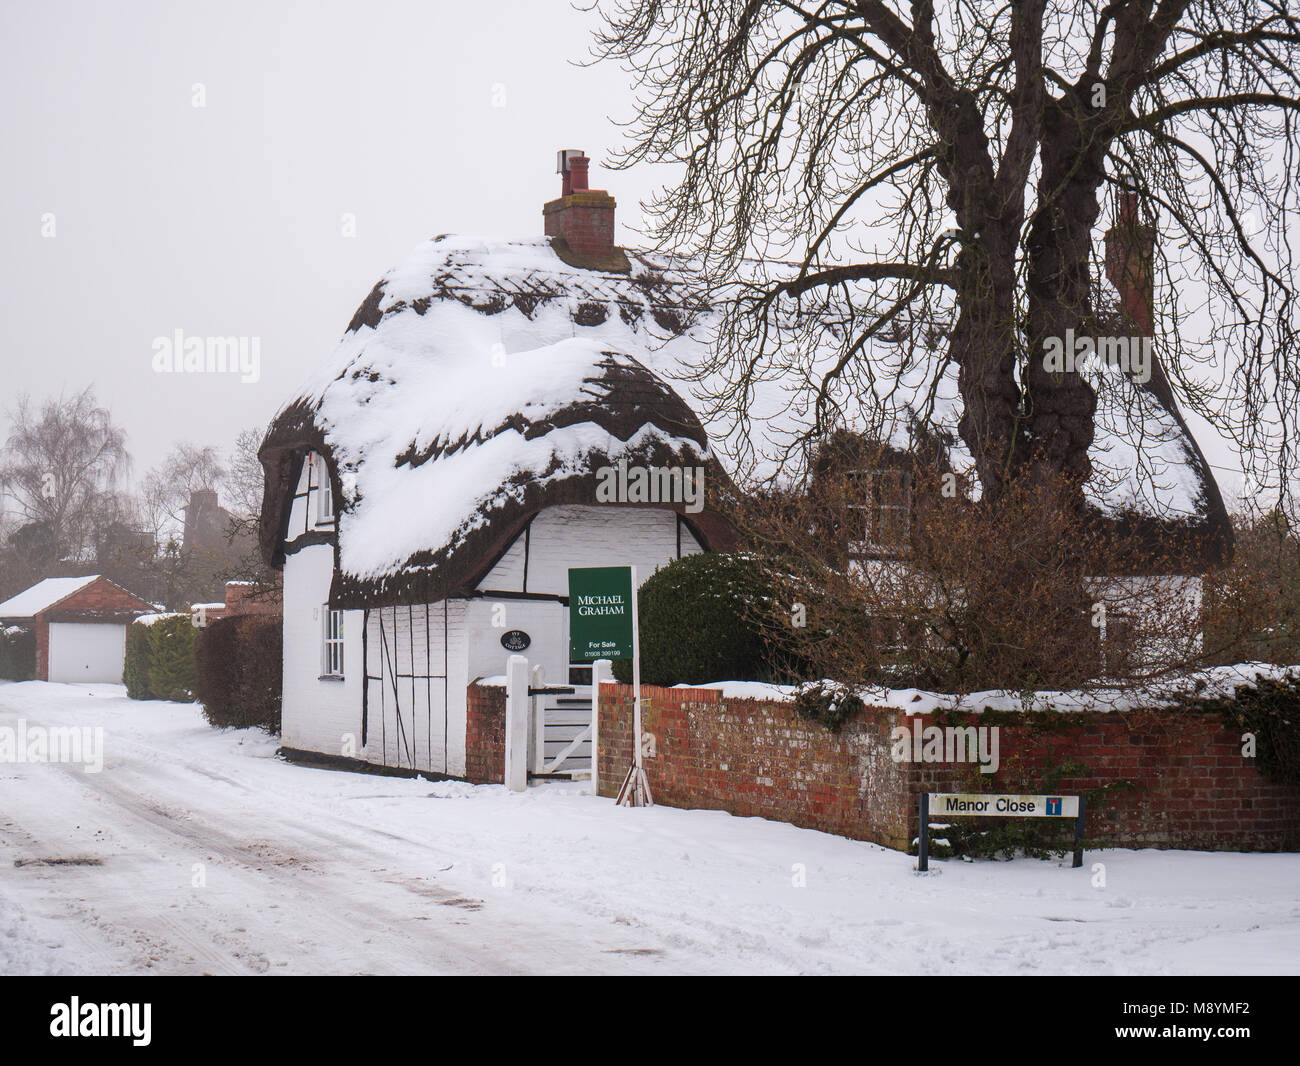 A thatched cottage in the snow, with a for sale sign outside Stock Photo